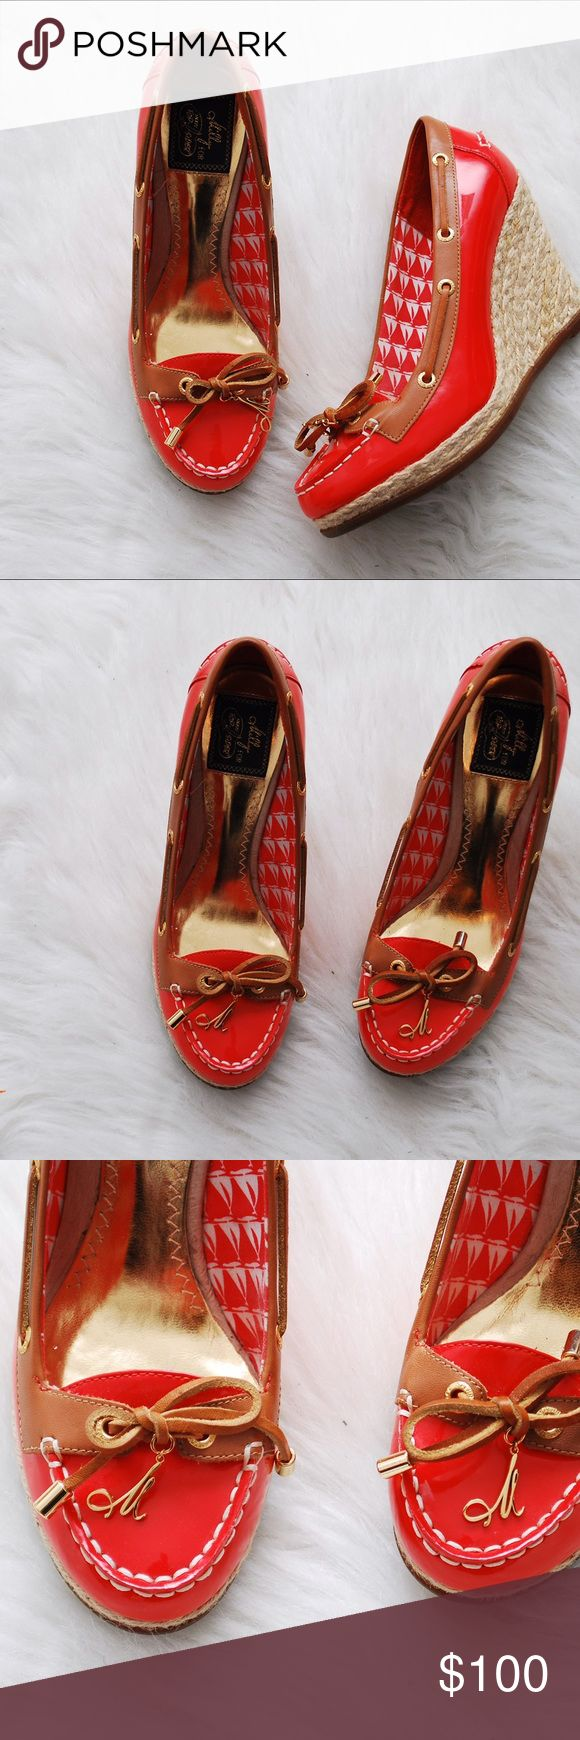 "RARE Milly for Sperry Top Sider Patent Wedges Rare patent leather Sperry Top Sider shoes from the Milly for Sperry Top Sider collection. Excellent condition. Like new. Soles clean. Color: Red-ish orange. 3.75"" wedged heel Sperry Top-Sider Shoes Wedges"